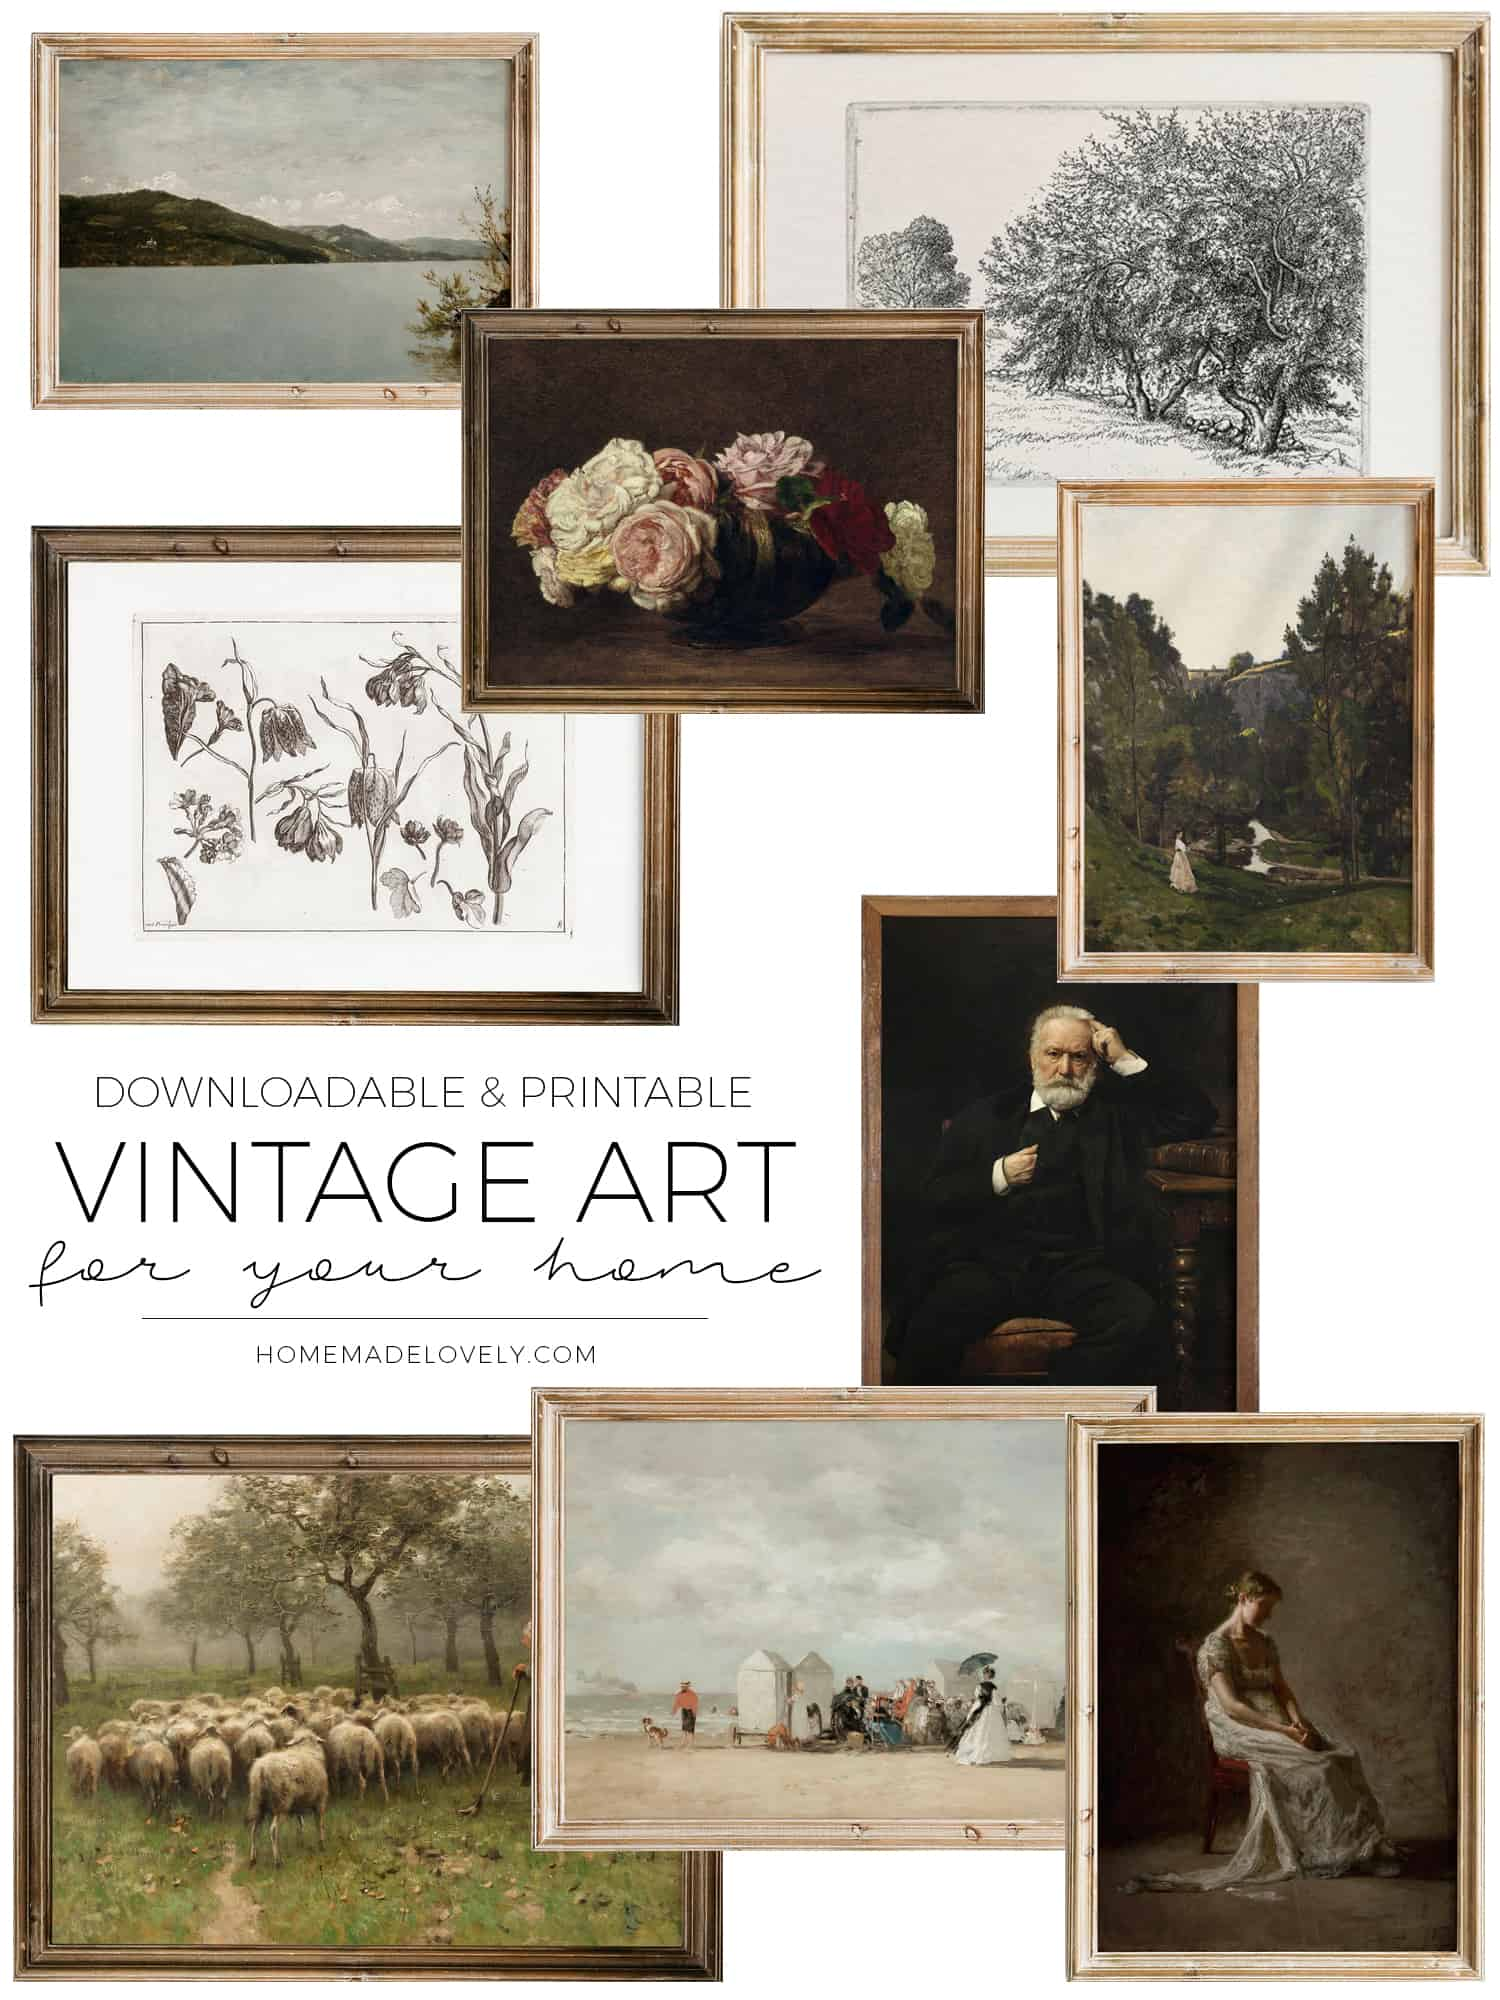 Downloadable Vintage Art for Your Home